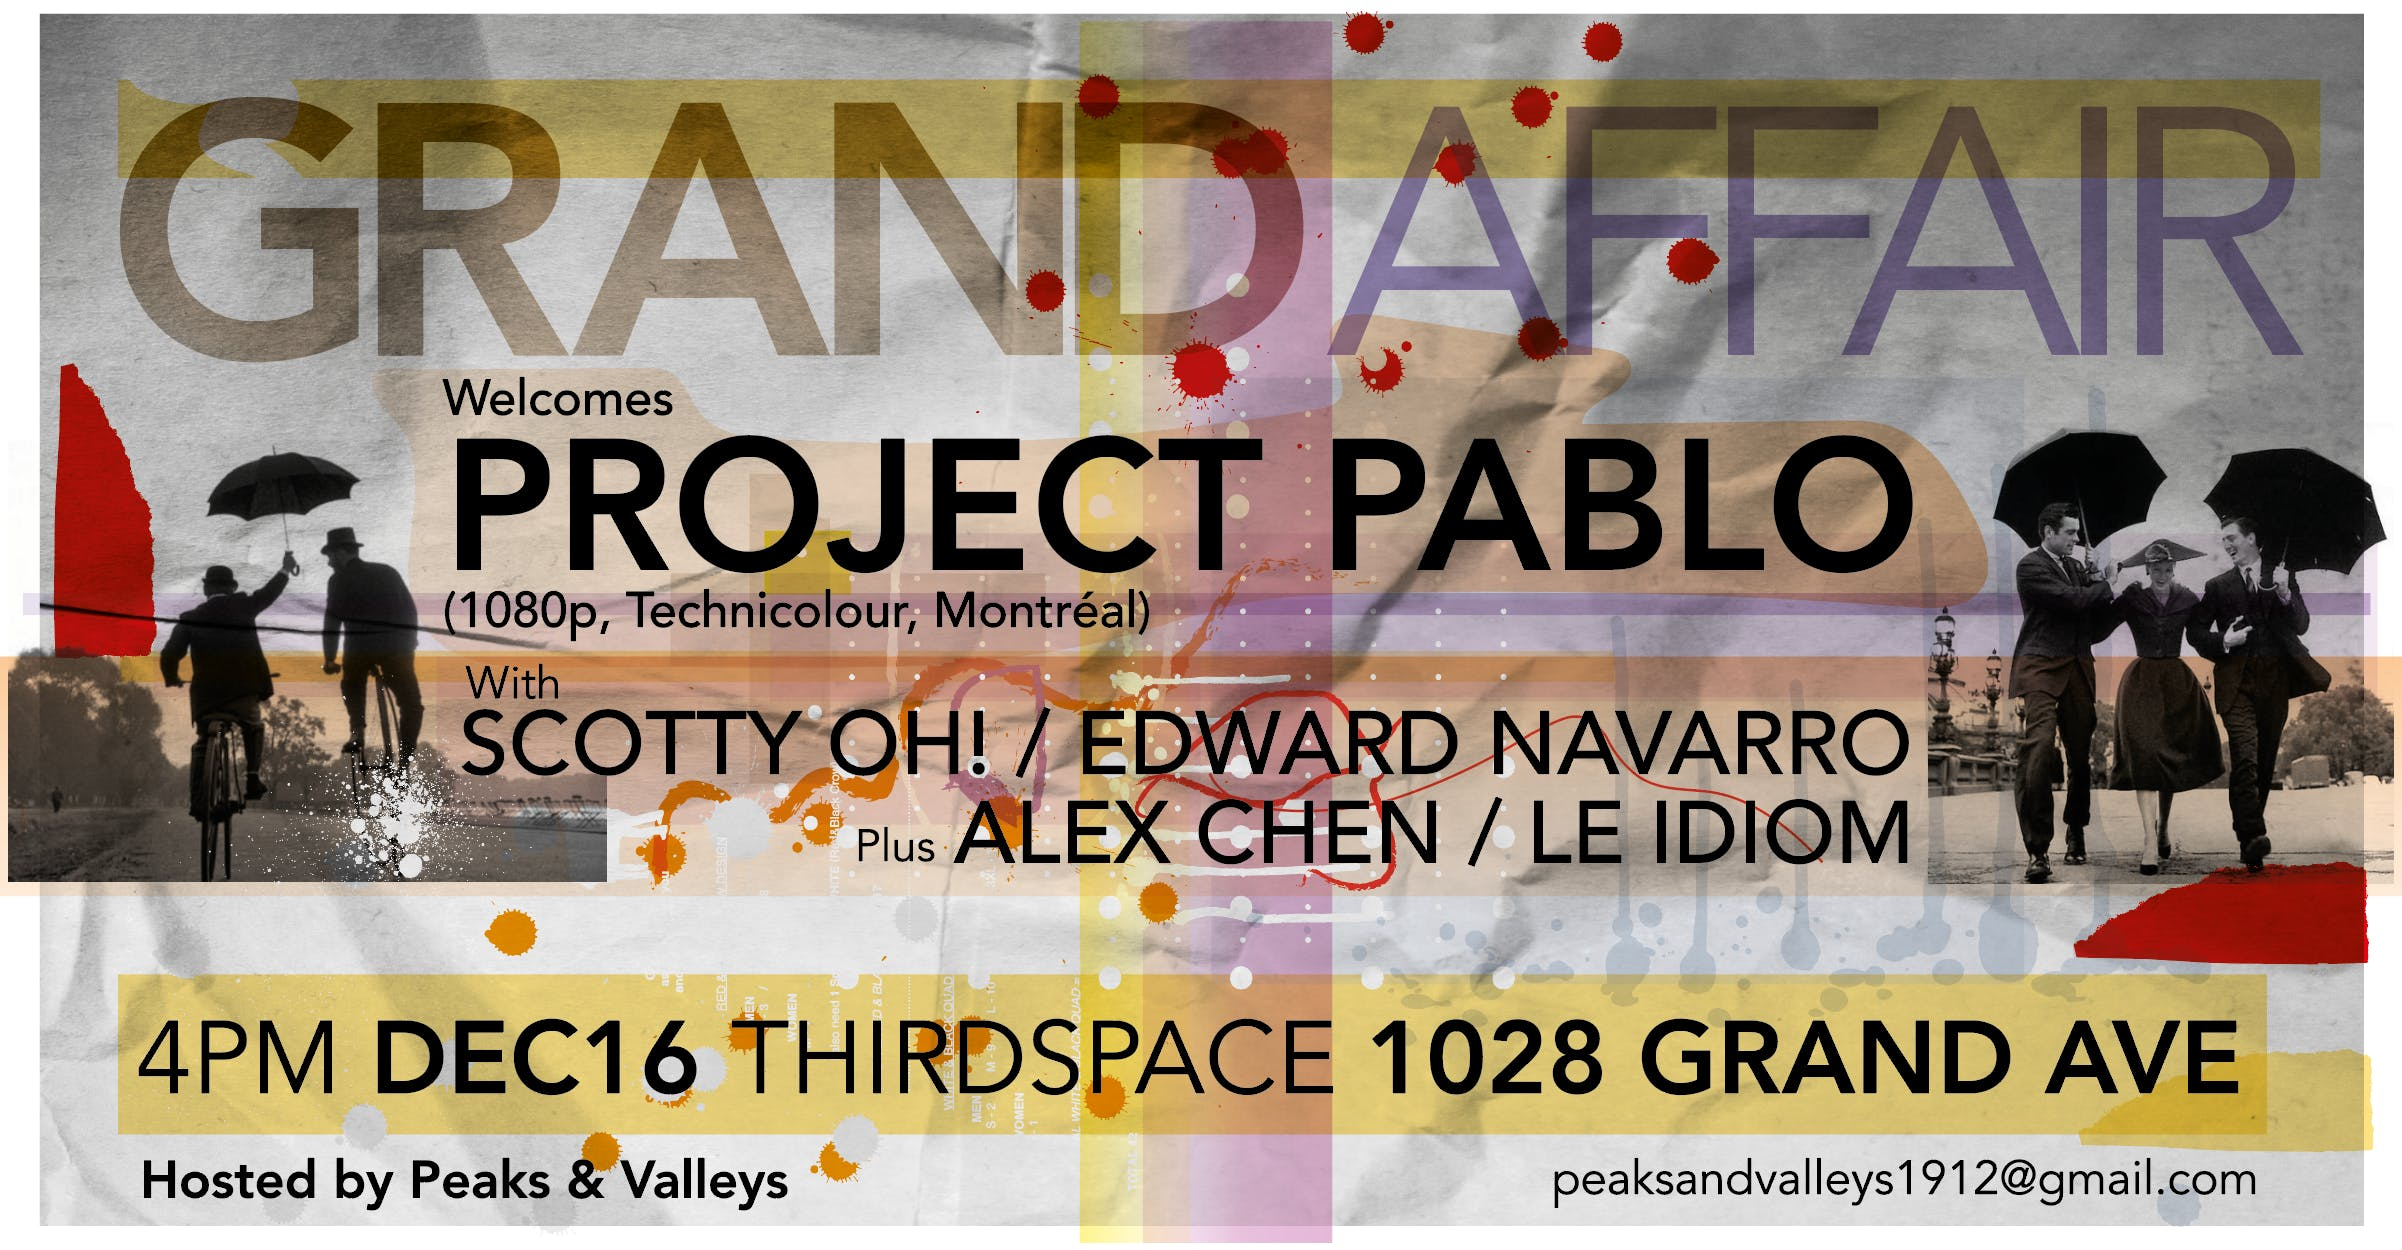 Grand Affair welcomes Project Pablo (CAN)